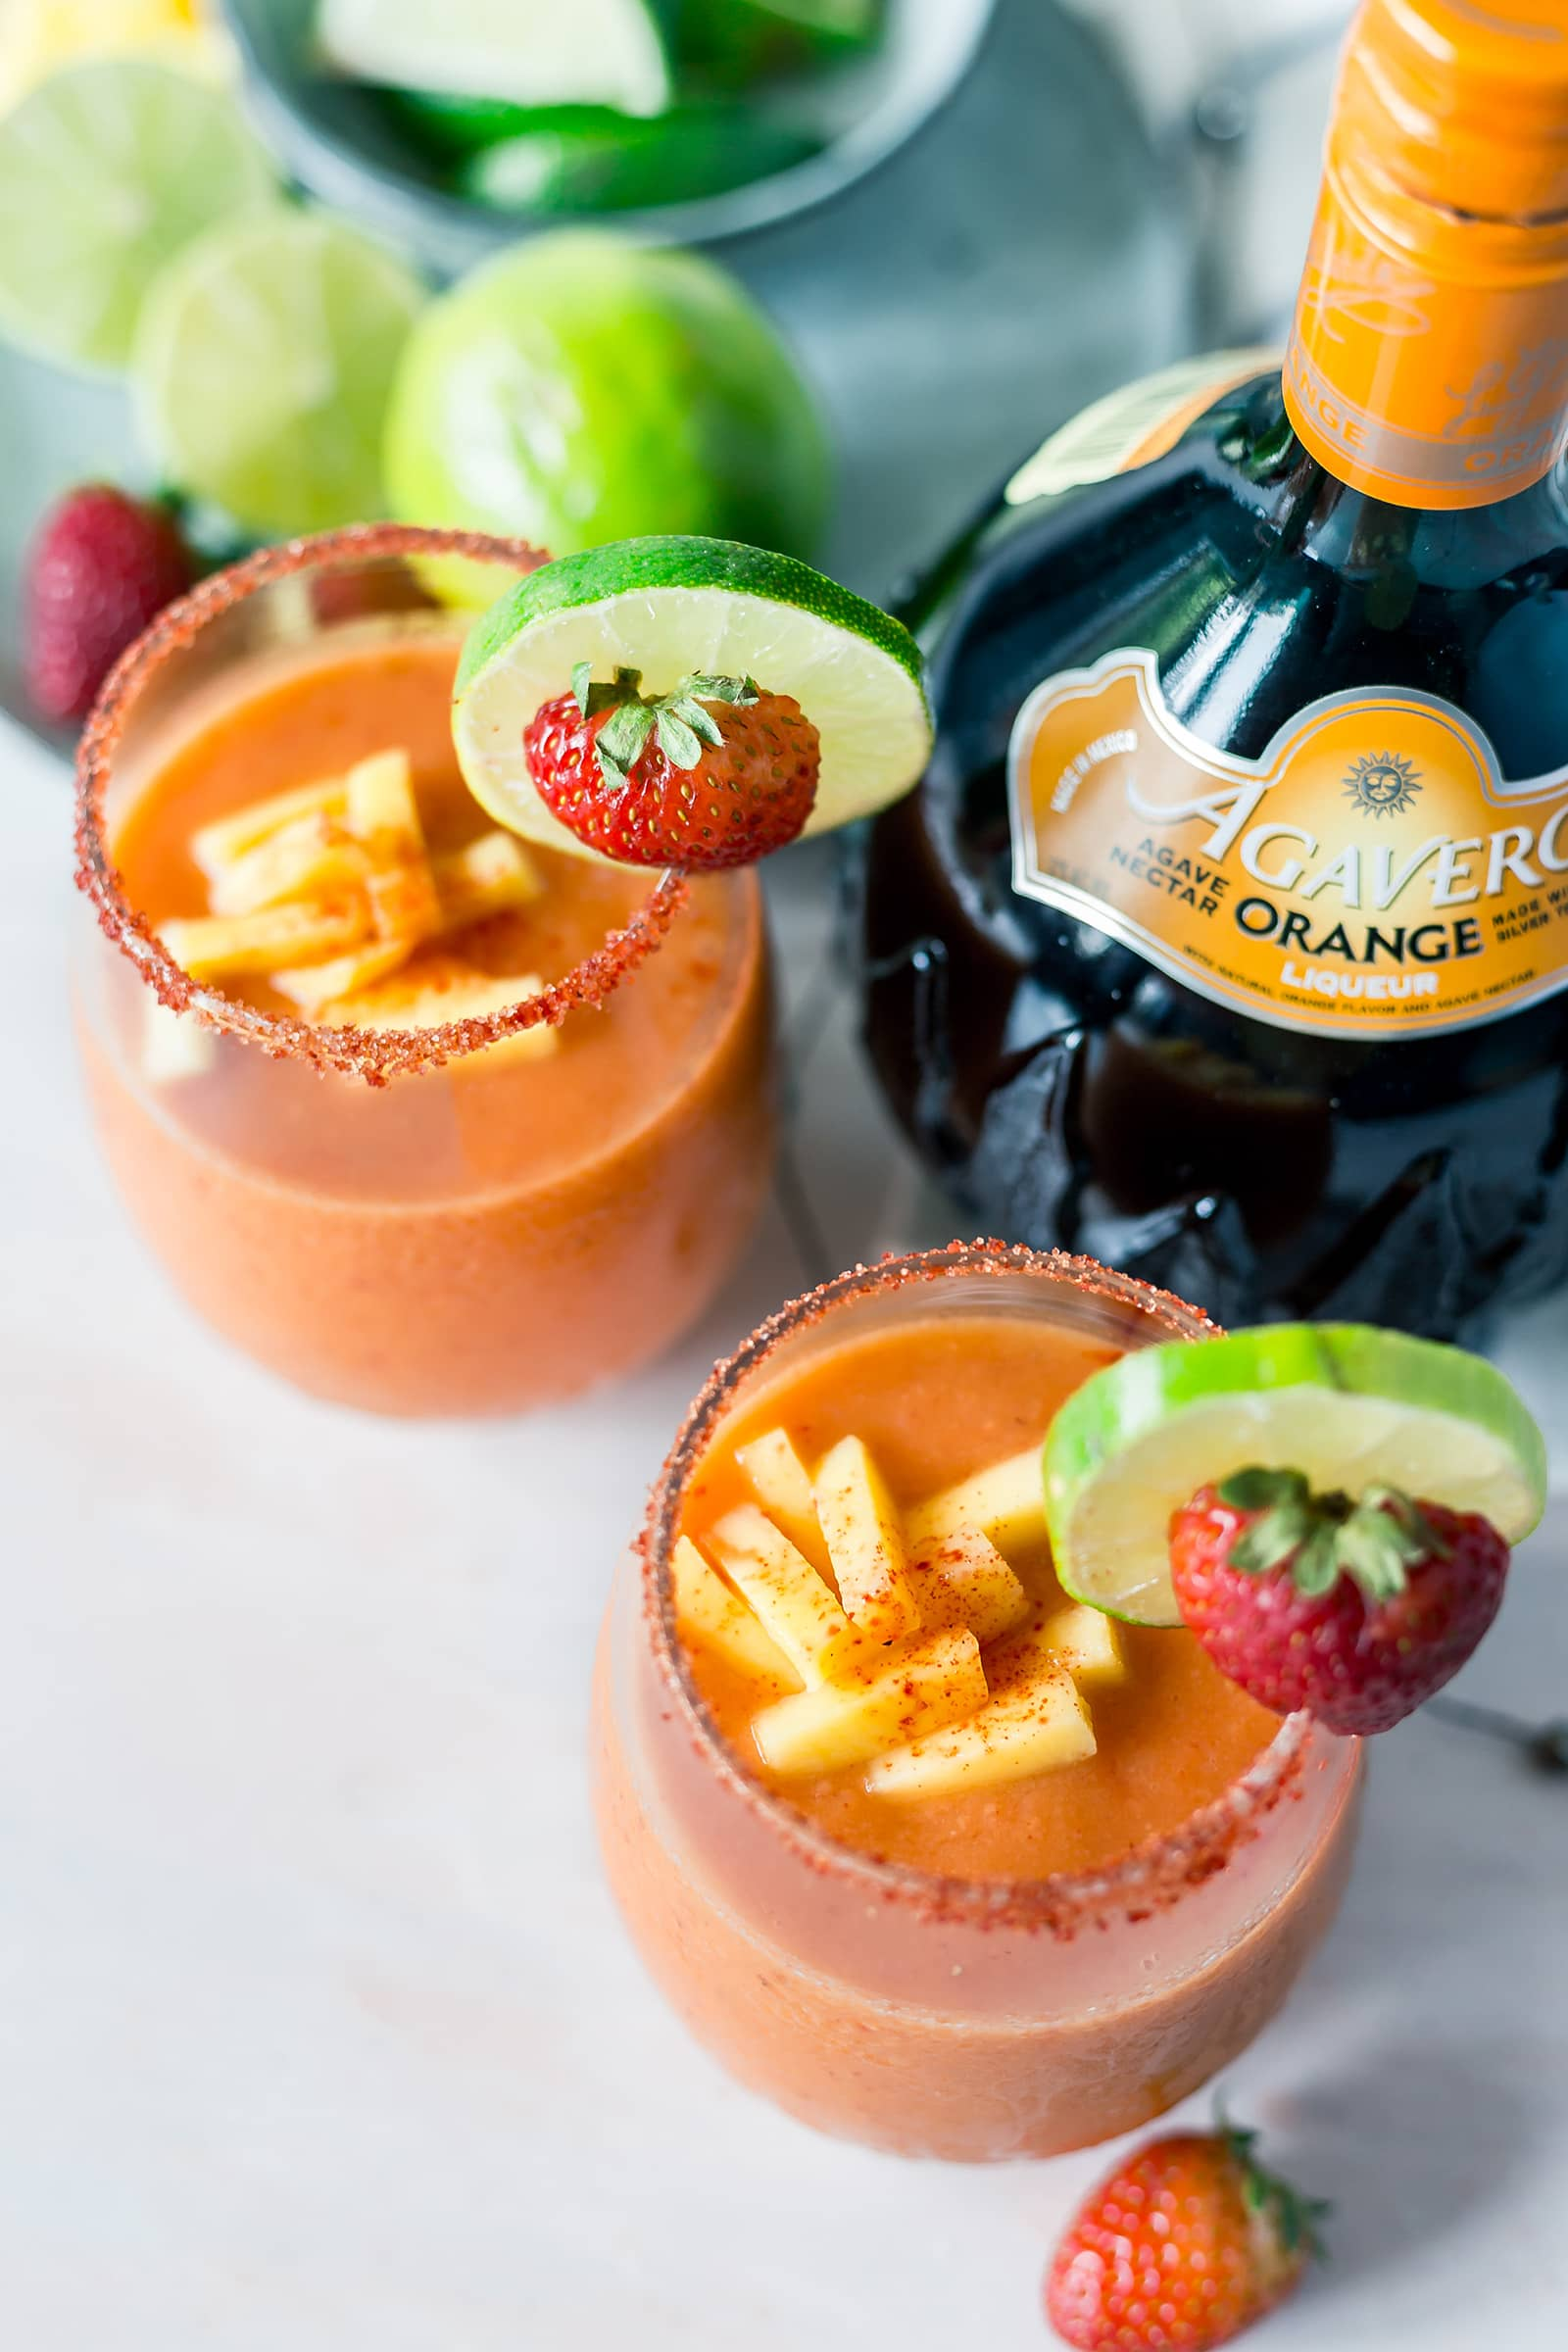 These Strawberry Mango Frozen Margaritas are to. die. for. in the summer heat! They are fruity, refreshing and all around delicious!